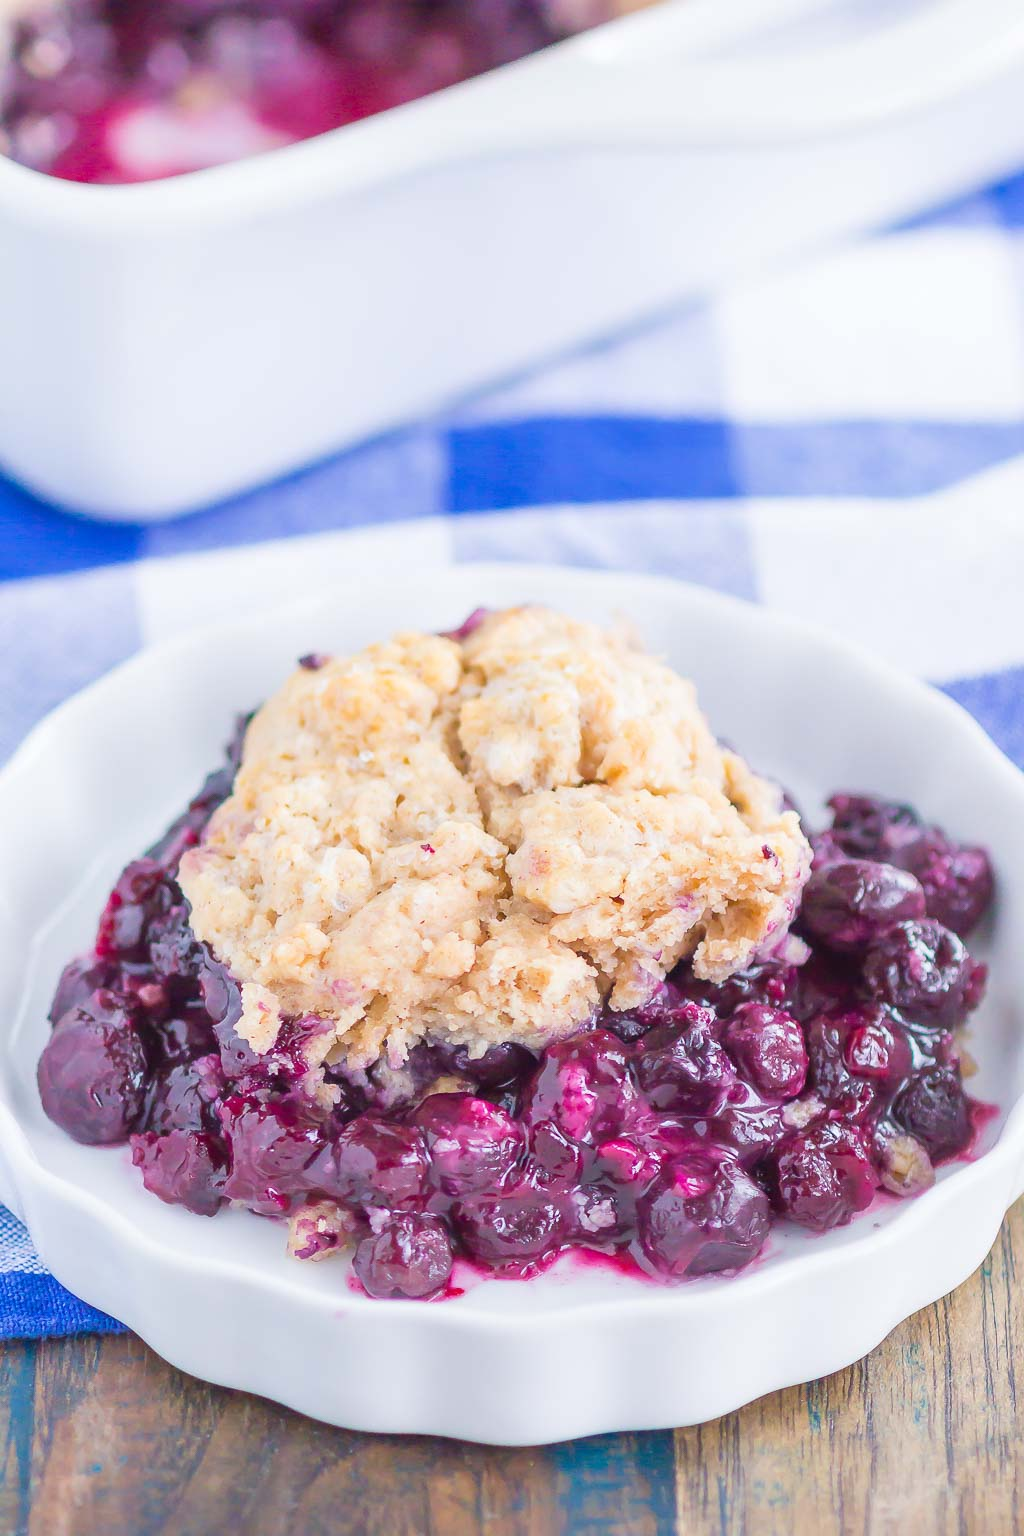 Easy Blueberry Cobbler is a simple dessert that's ready in no time. Tangy blueberries are tossed with cozy spices and then sprinkled with a buttery, cinnamon sugar cake-like topping. Easy to make and loaded with flavor, this cozy cobbler is perfect to enjoy all year long!